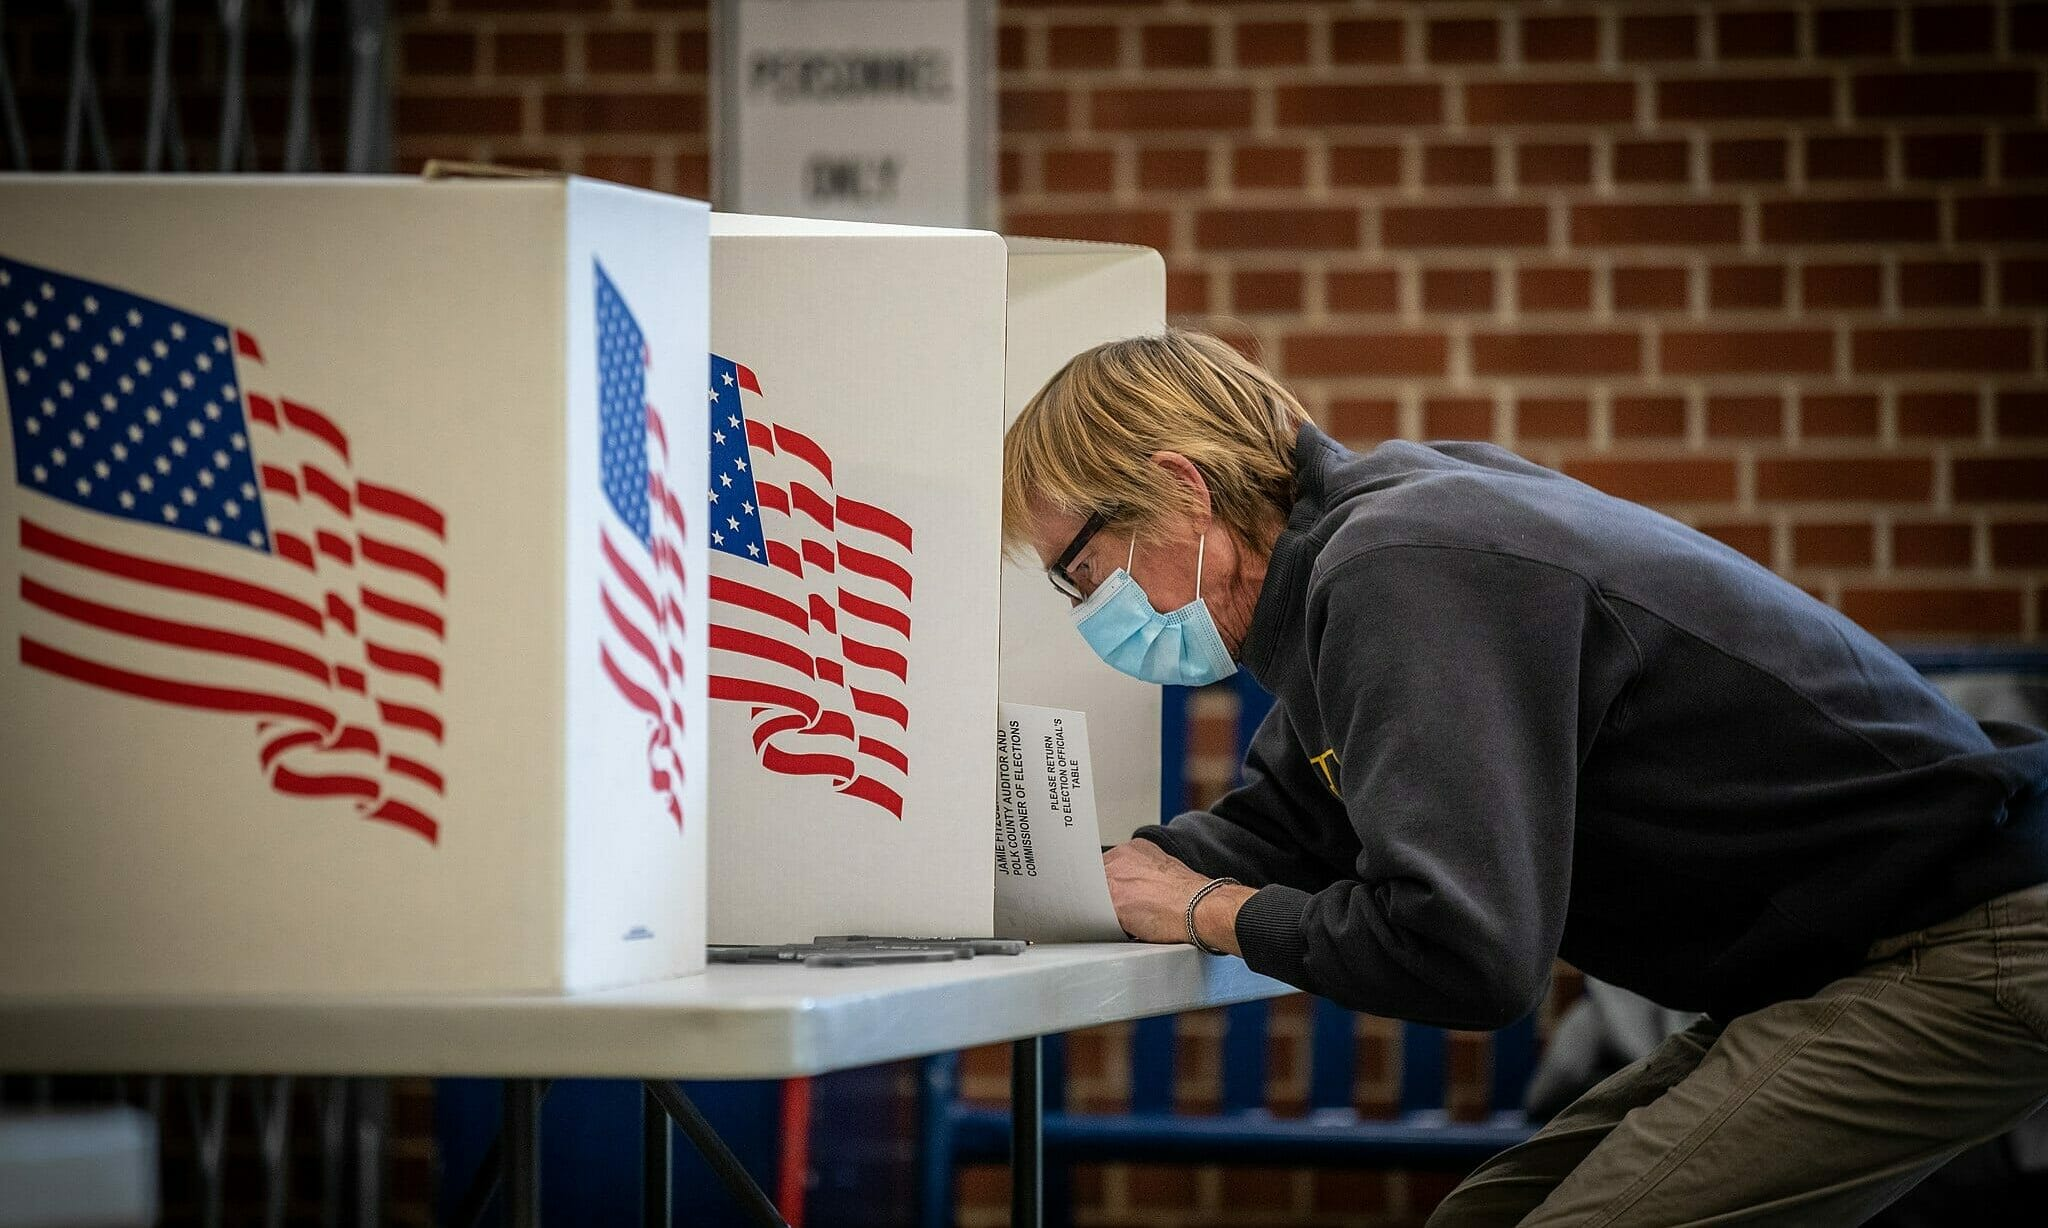 Cybersecurity in a fishbowl: How North Carolina's Board of Elections handled it